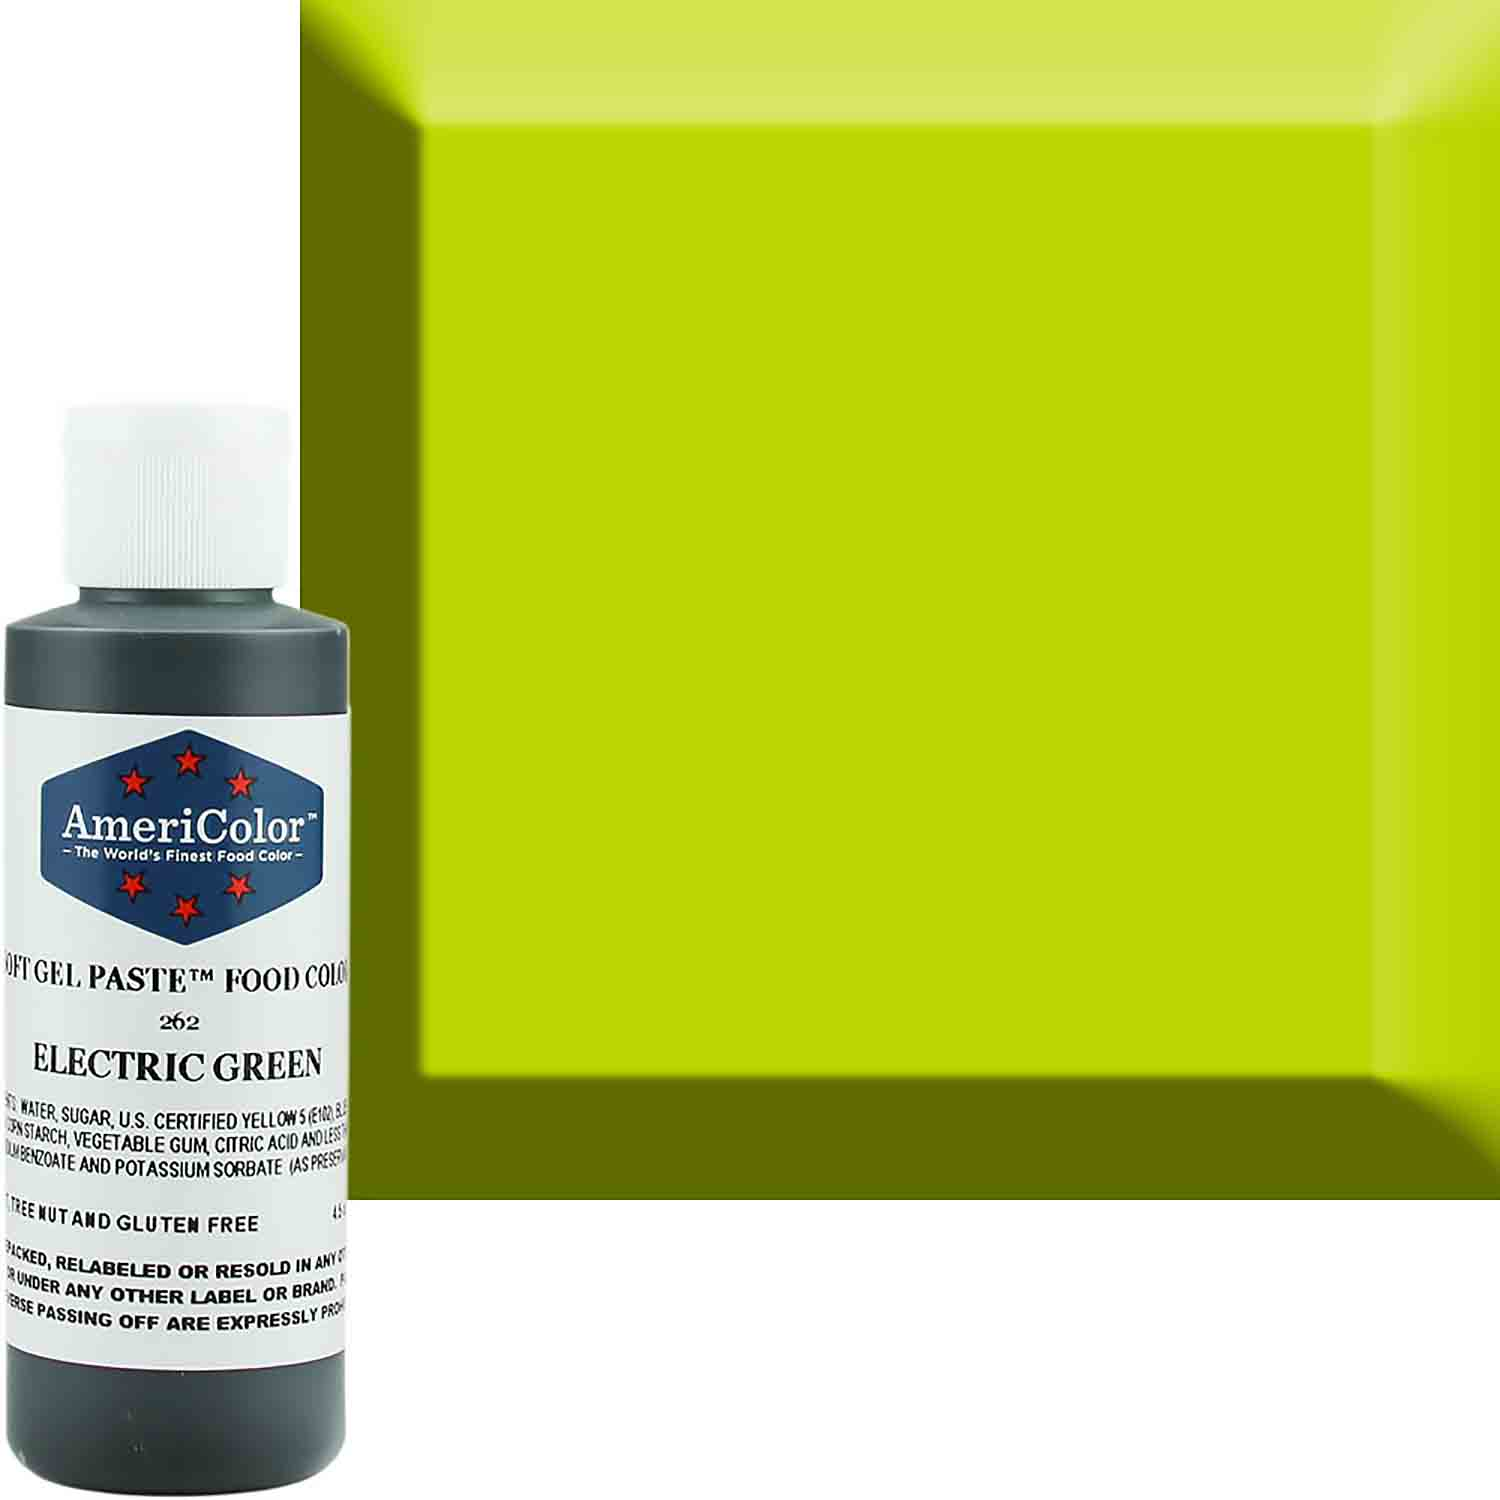 Neon/Electric Green Americolor® Soft Gel Paste Food Color